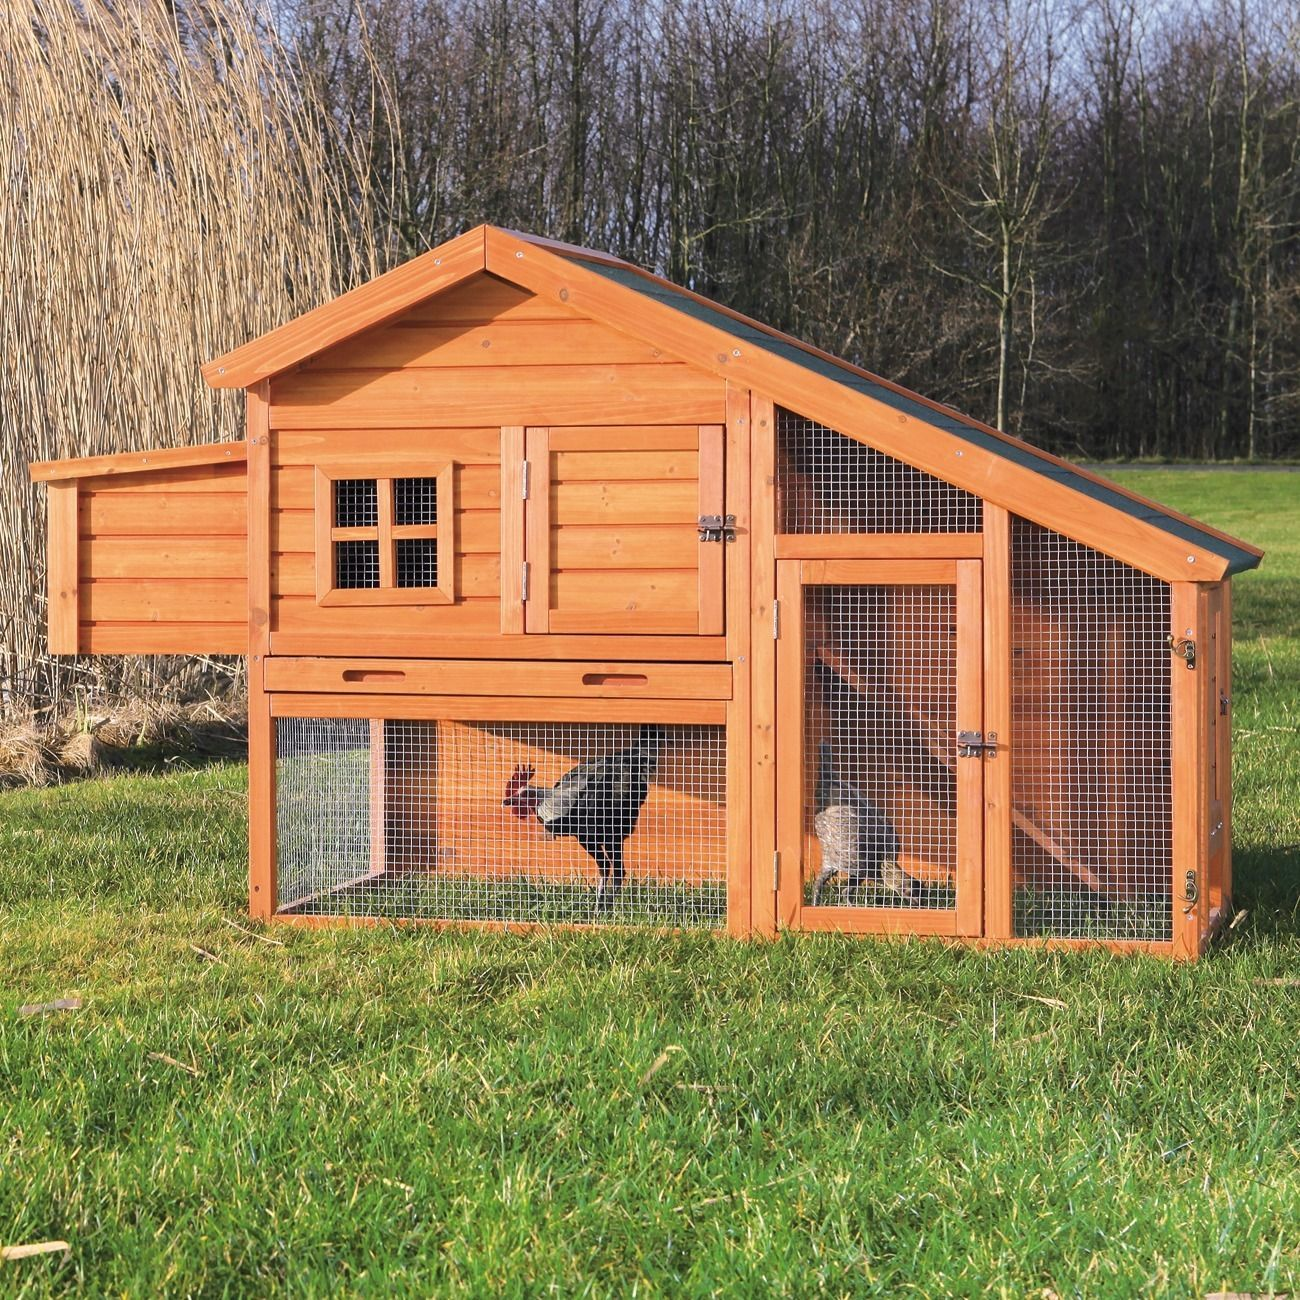 Raising Chickens Can Be A Fun And Rewarding Experience For